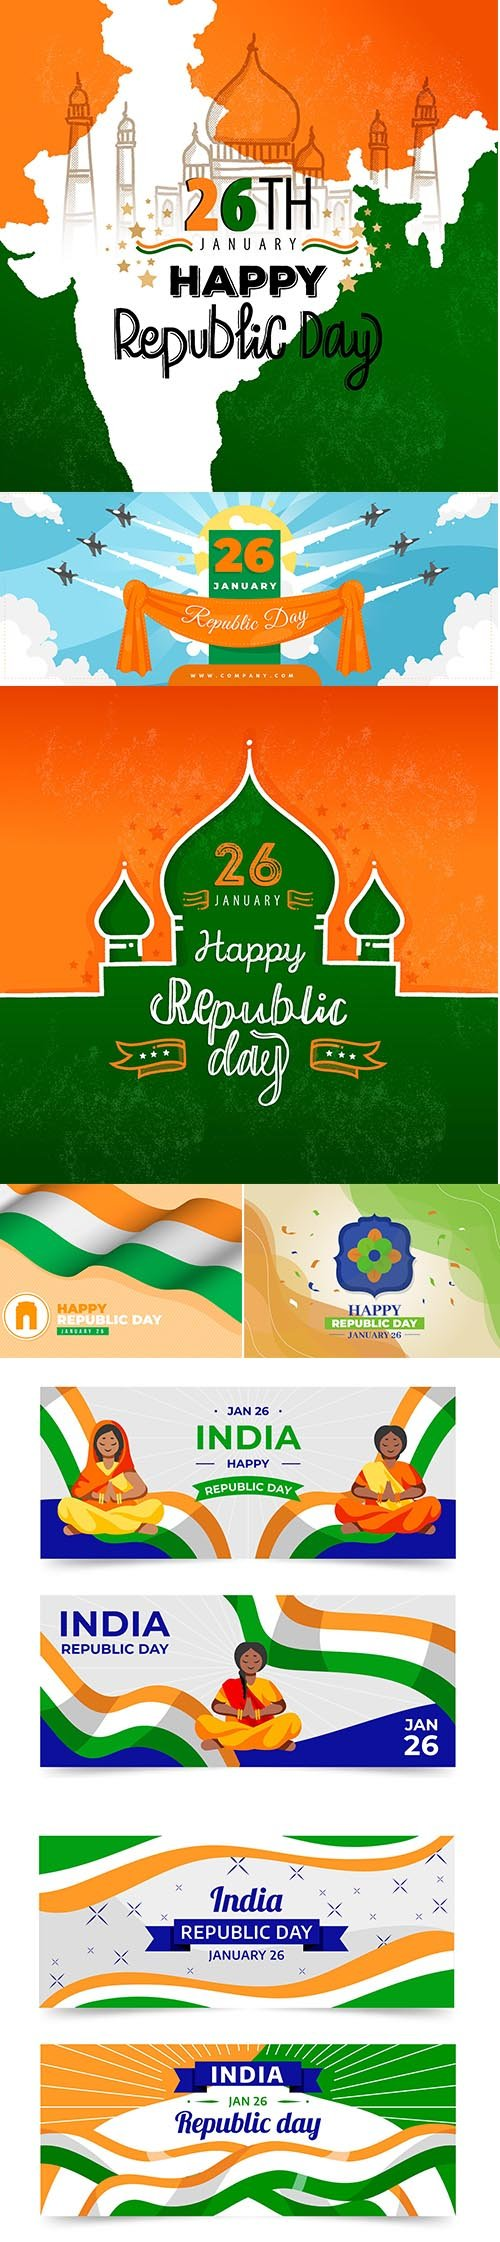 Flat design india republic day banner